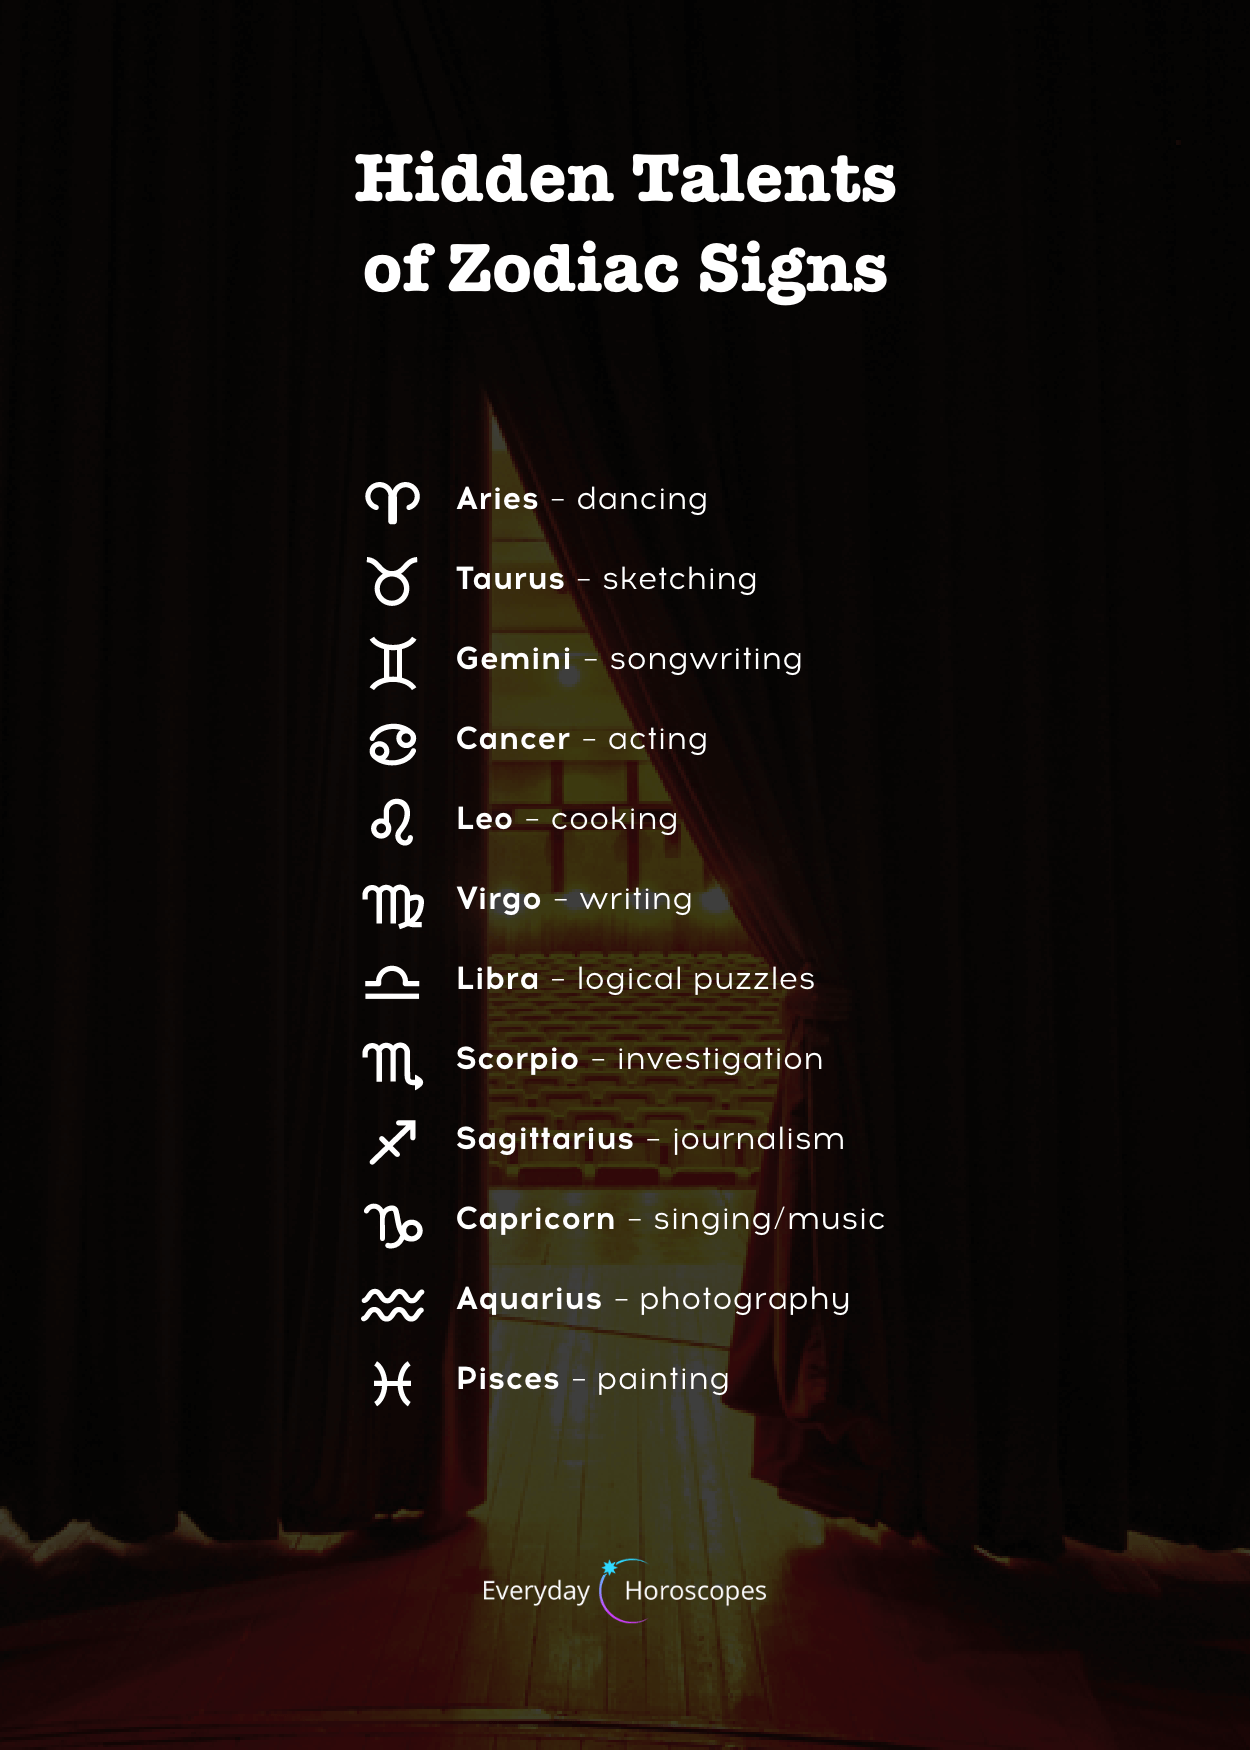 Your Psychic Talents #zodiacsigns